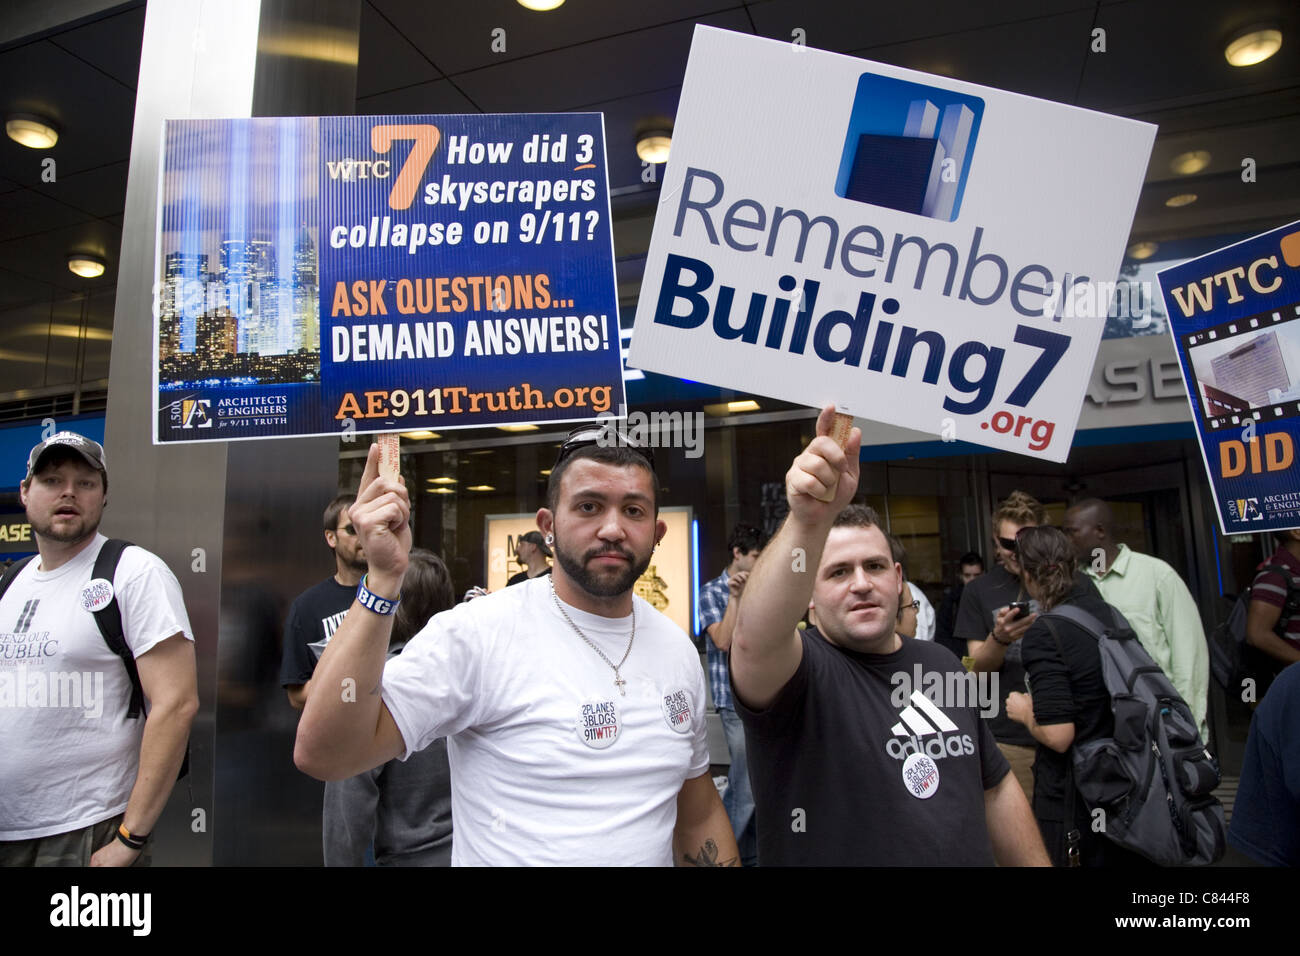 9/11 10th Anniversary, NYC. Conspiracy Theorists demonstrate for an independent investigation of the 9/11 disaster. - Stock Image